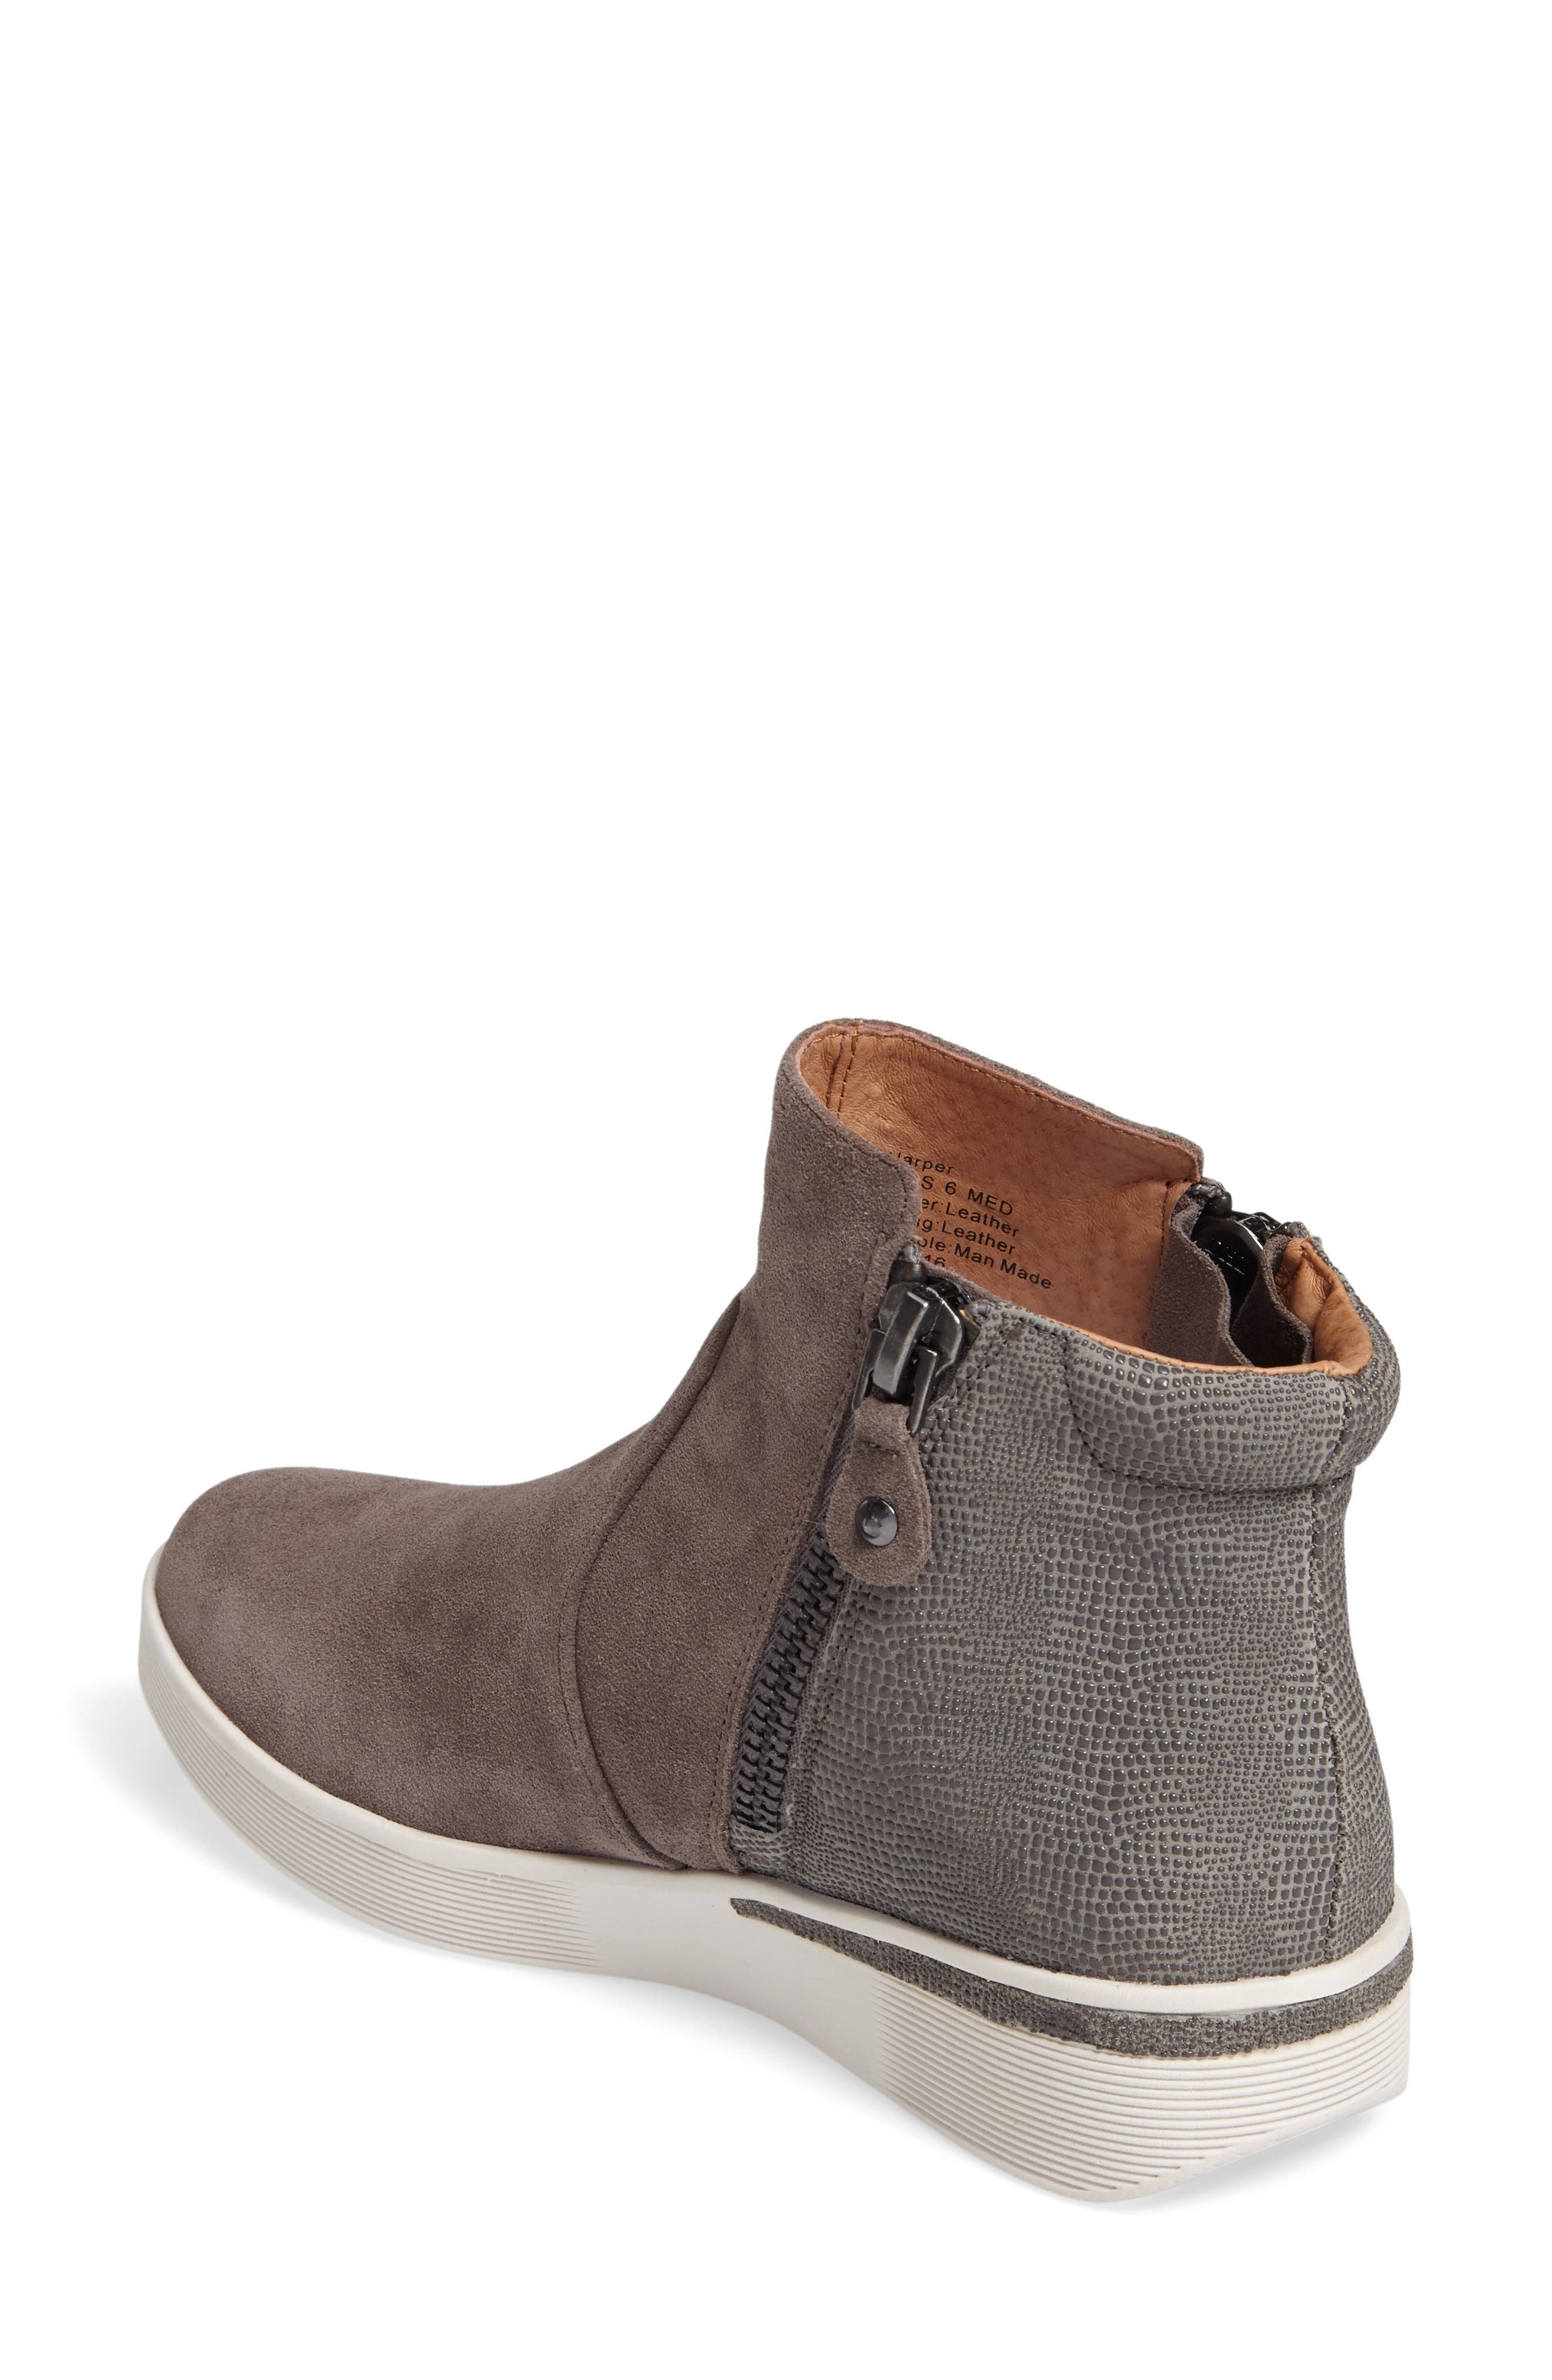 'Harper' Sneaker Bootie,                             Alternate thumbnail 2, color,                             GREY LEATHER